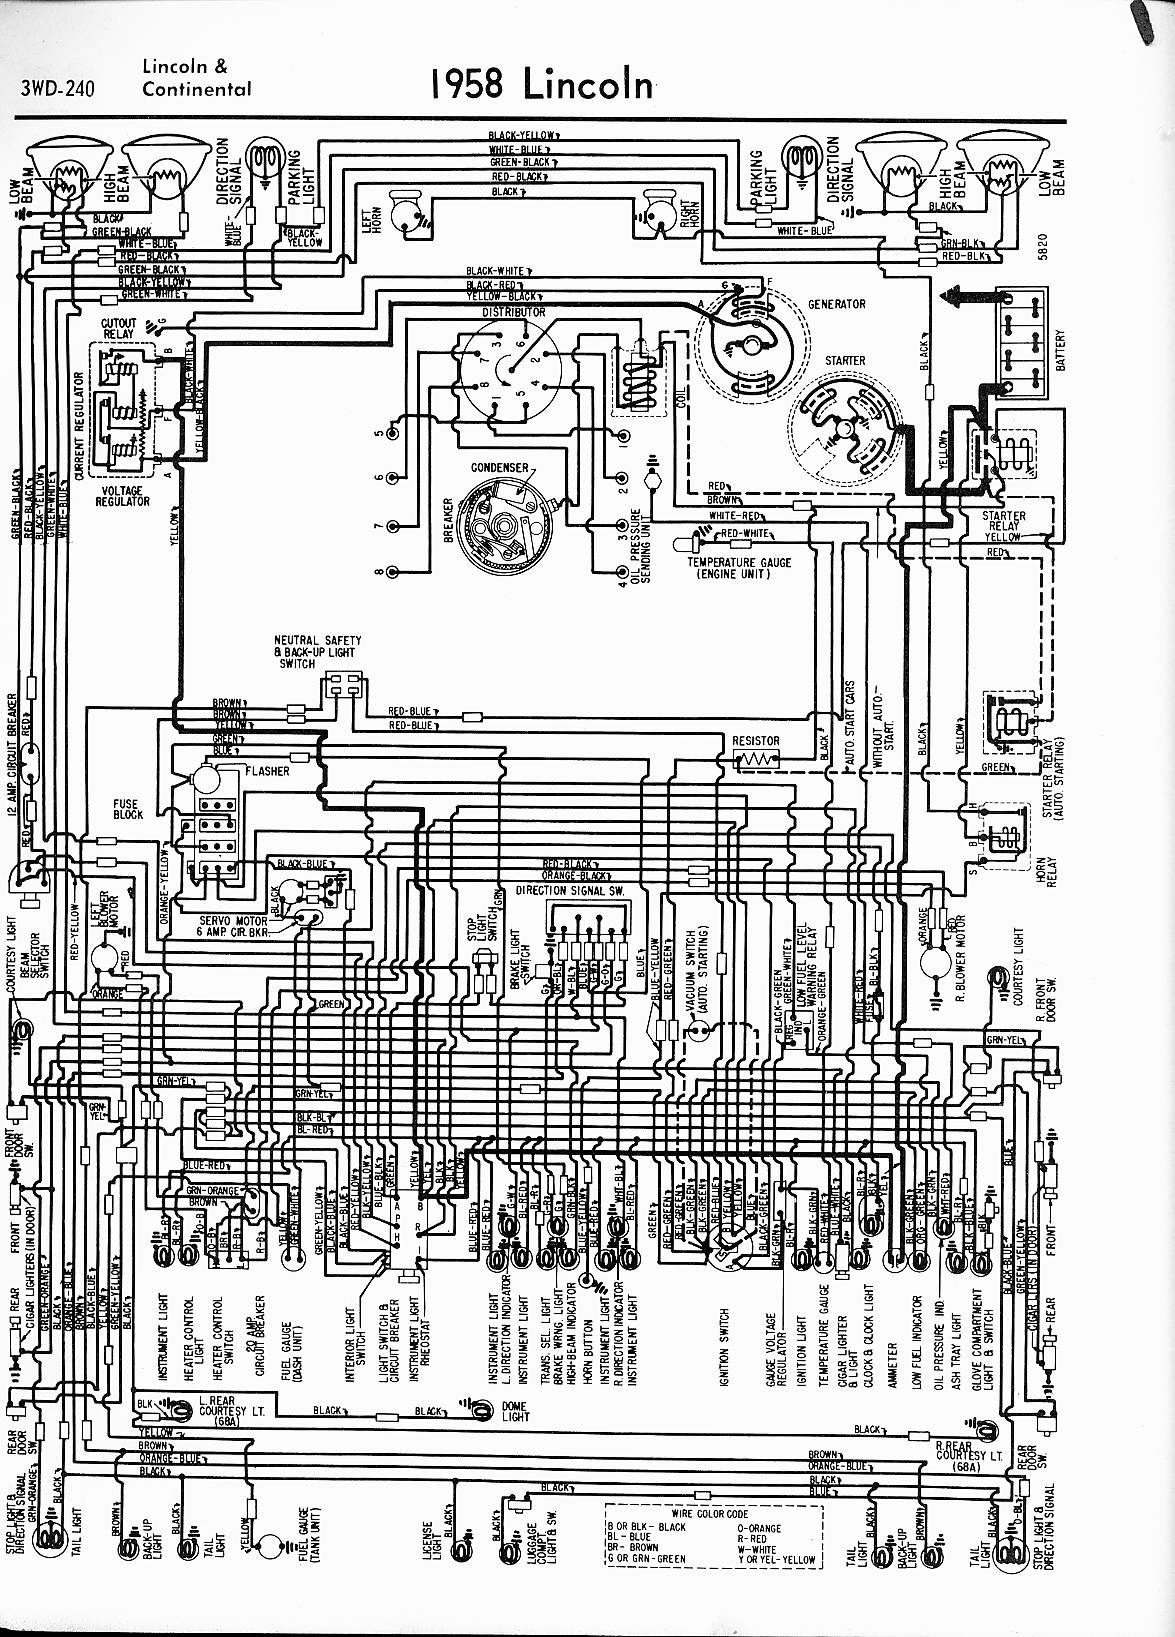 1966 lincoln engine diagram data wiring diagrams u2022 rh mikeadkinsguitar com Old Fire Engine Wiring Diagram 1998 Land Cruiser V8 Engine Diagram